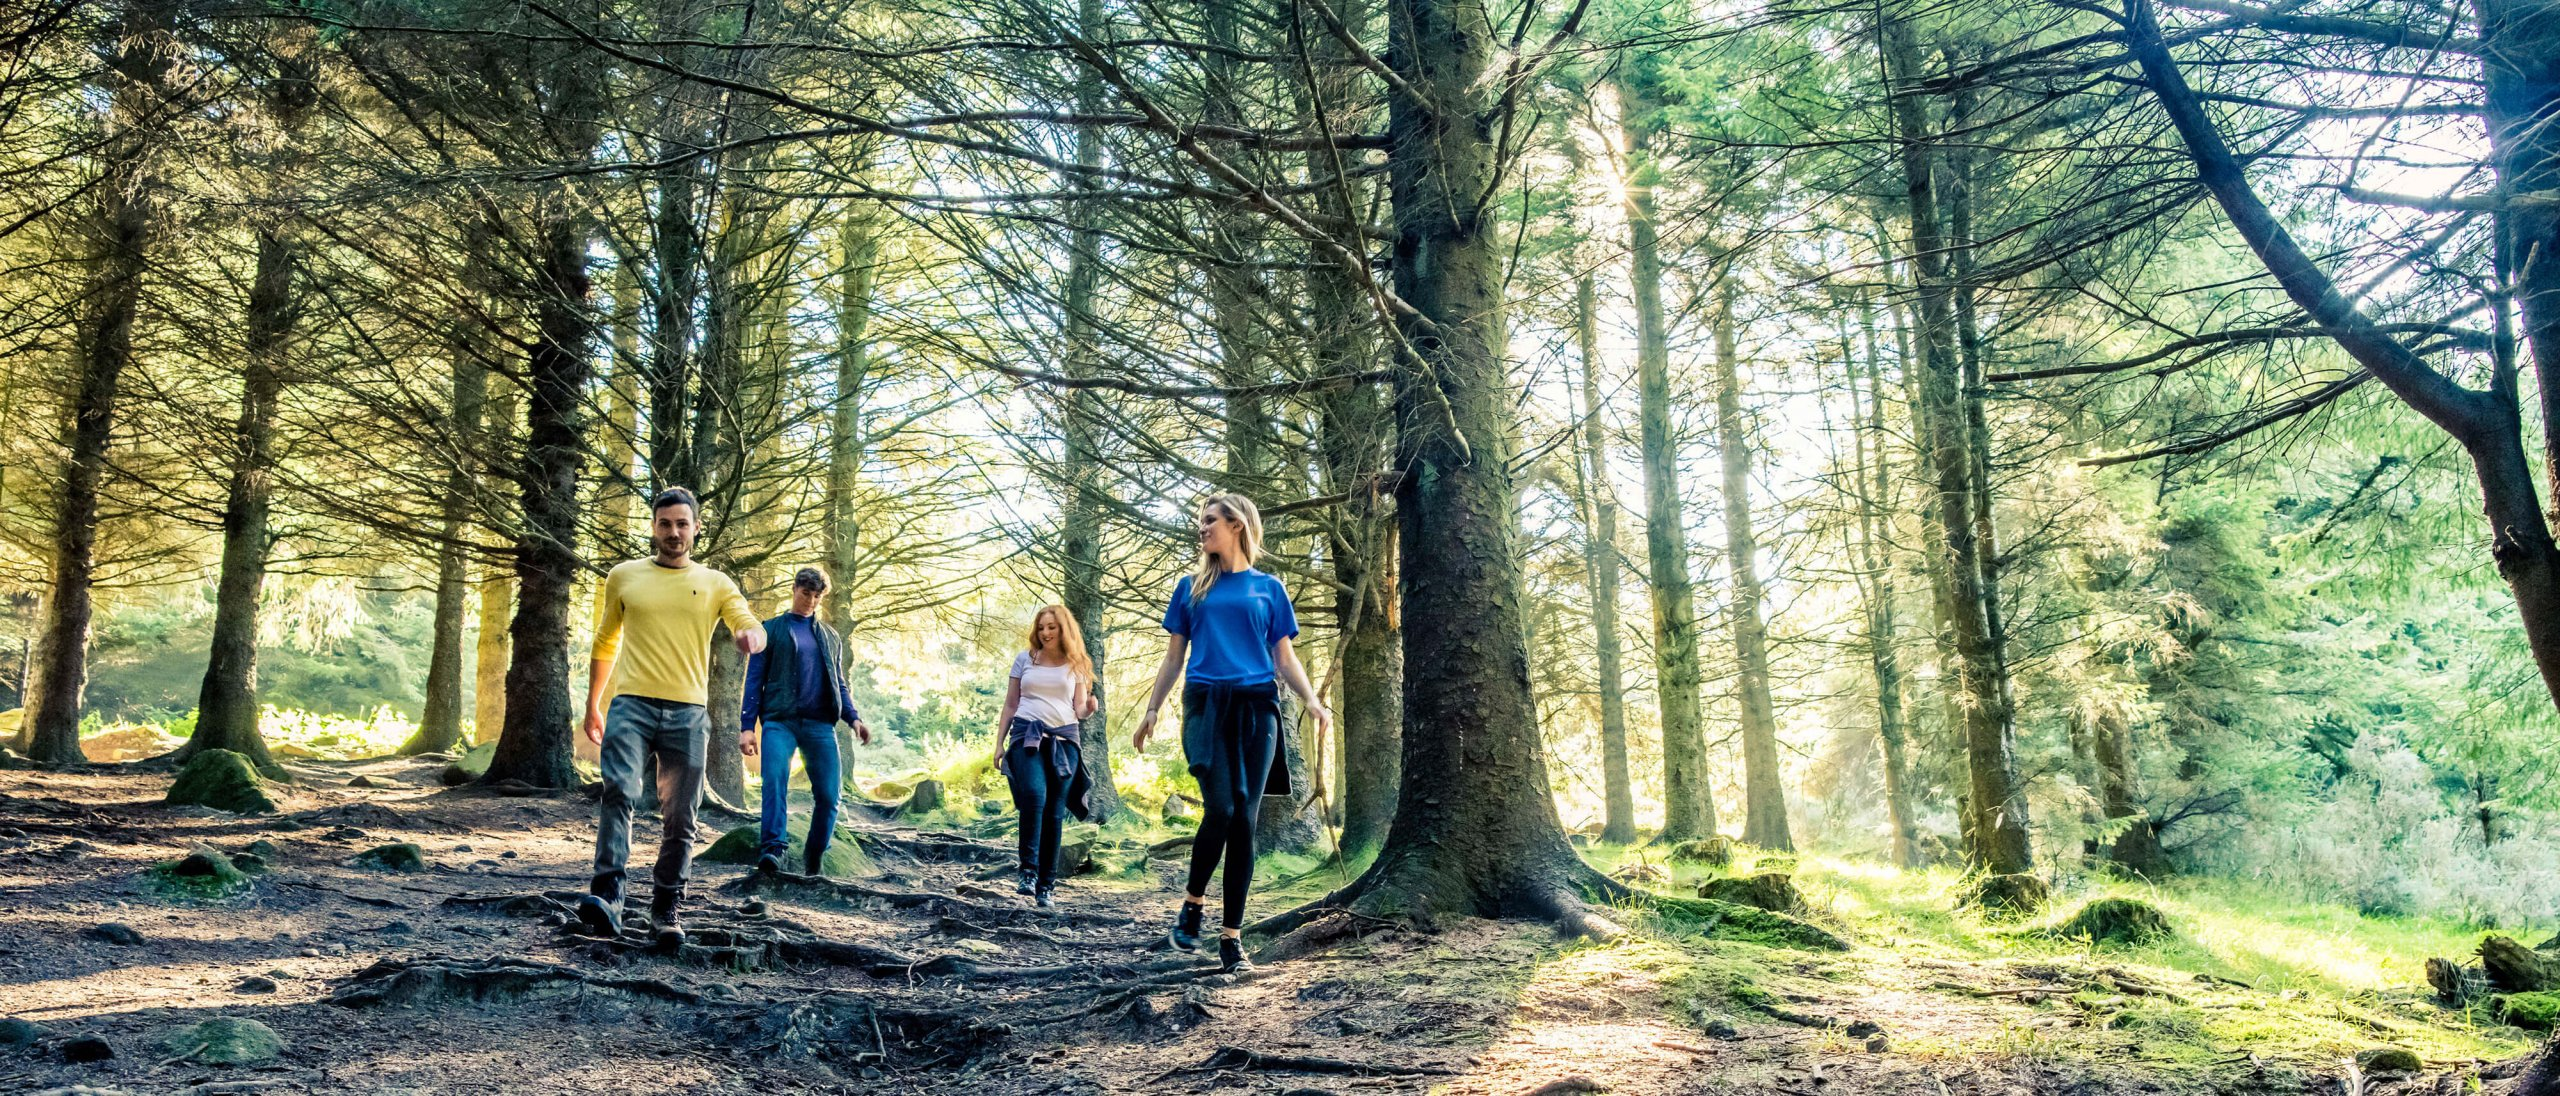 Group hiking in a forest in Ireland